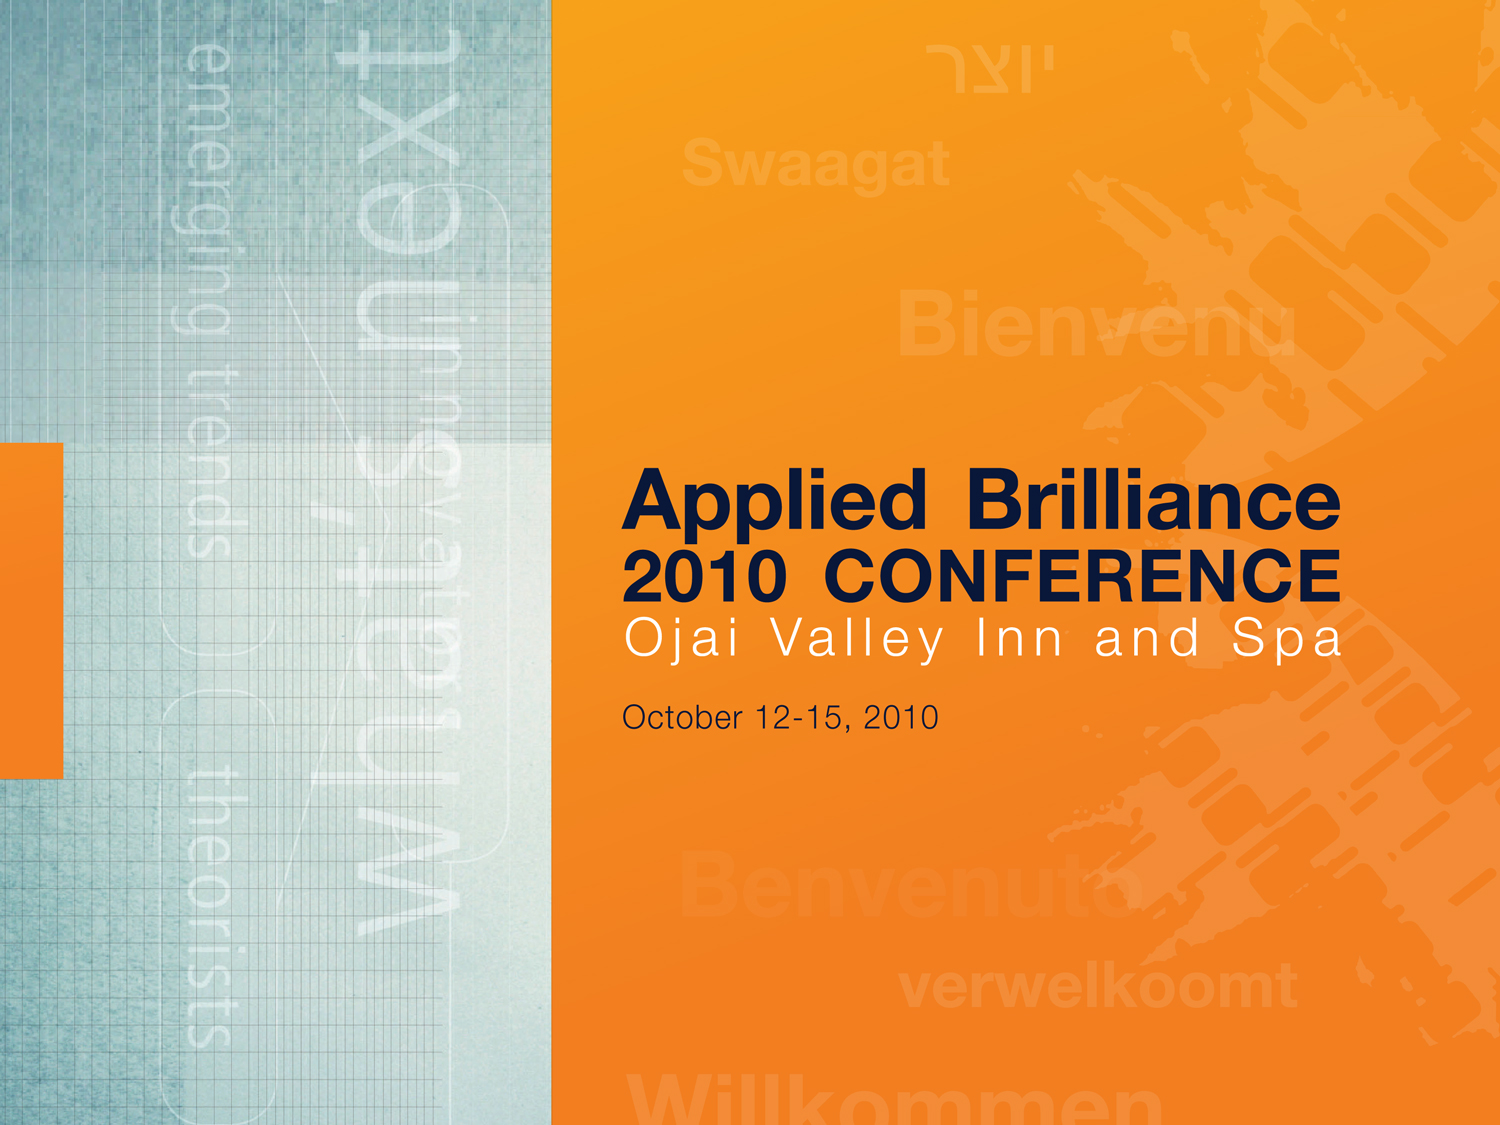 AB5-Conference-2010-Title.jpg